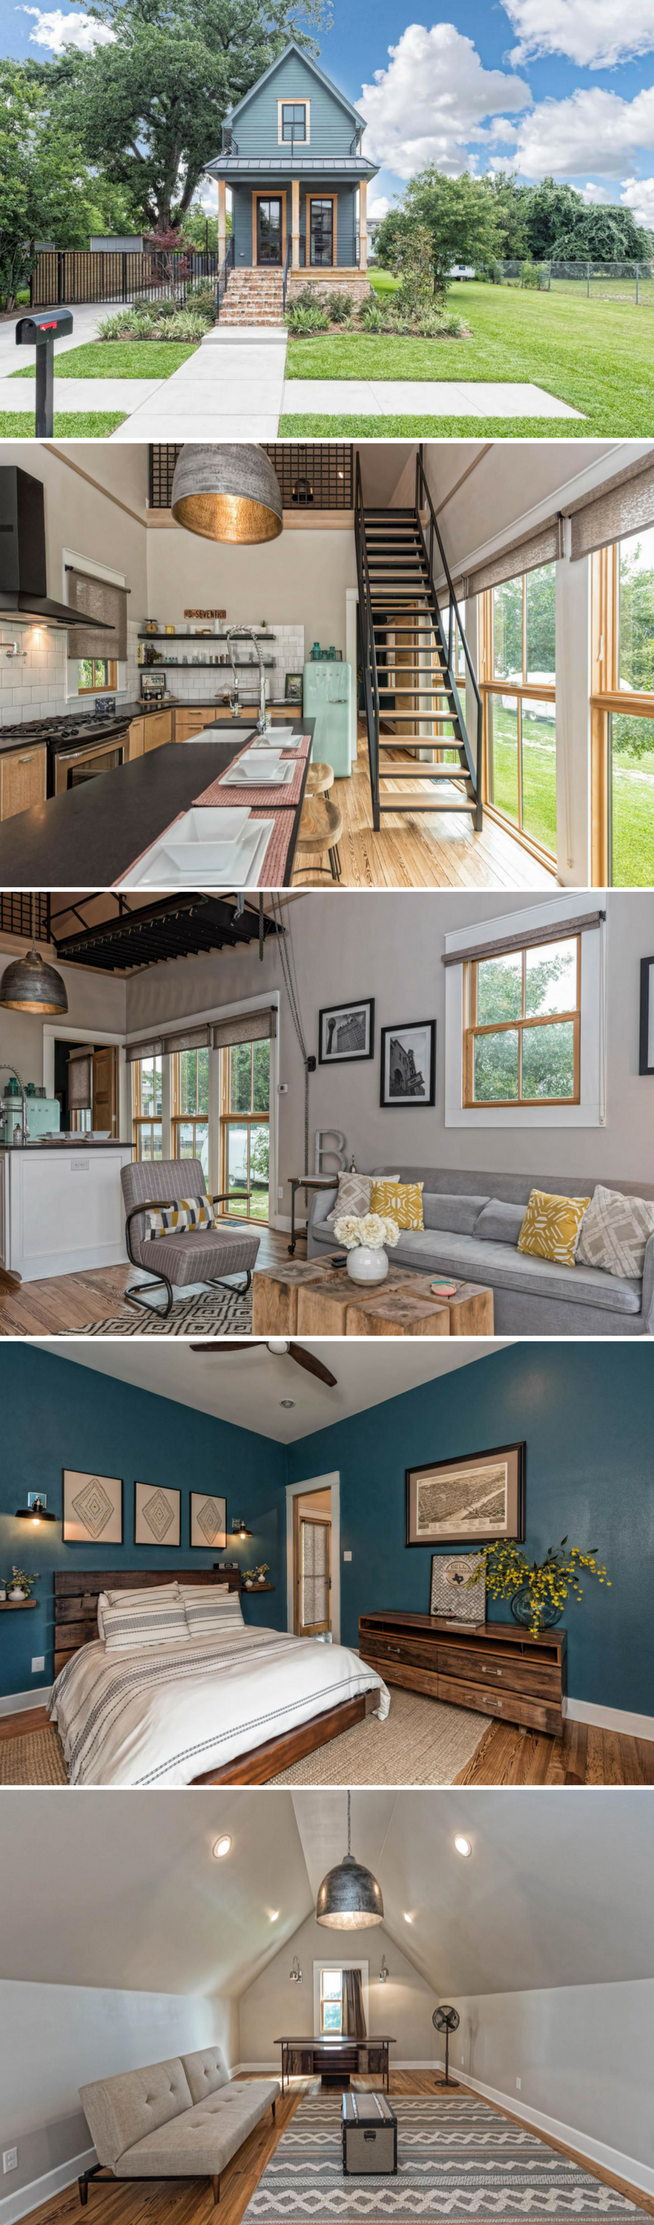 pretty house the smallest home featured on fixer upper just 1 000 sq ft and now available for. Black Bedroom Furniture Sets. Home Design Ideas